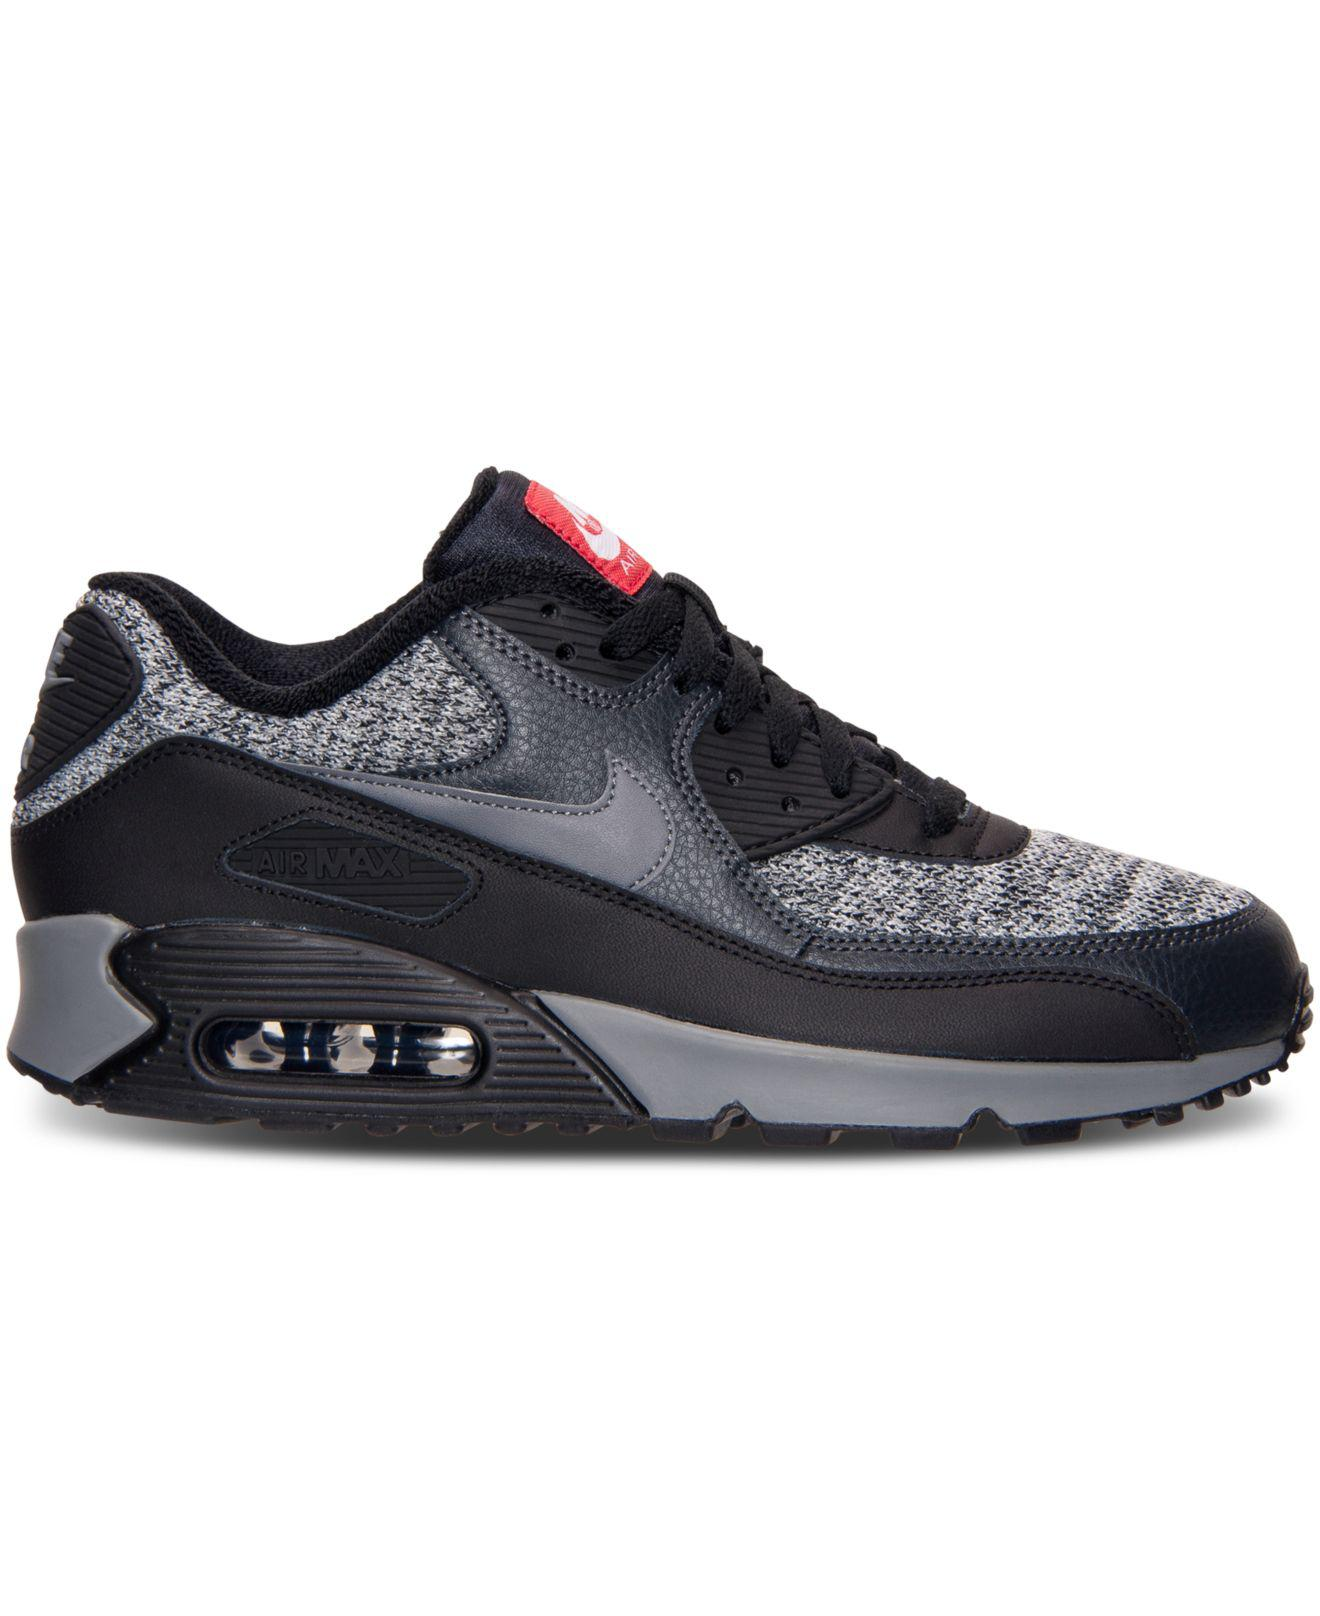 Lyst - Nike Men s Air Max 90 Essential Running Sneakers From Finish Line in  Black for Men - Save 55.04587155963303% bdae4f3c2